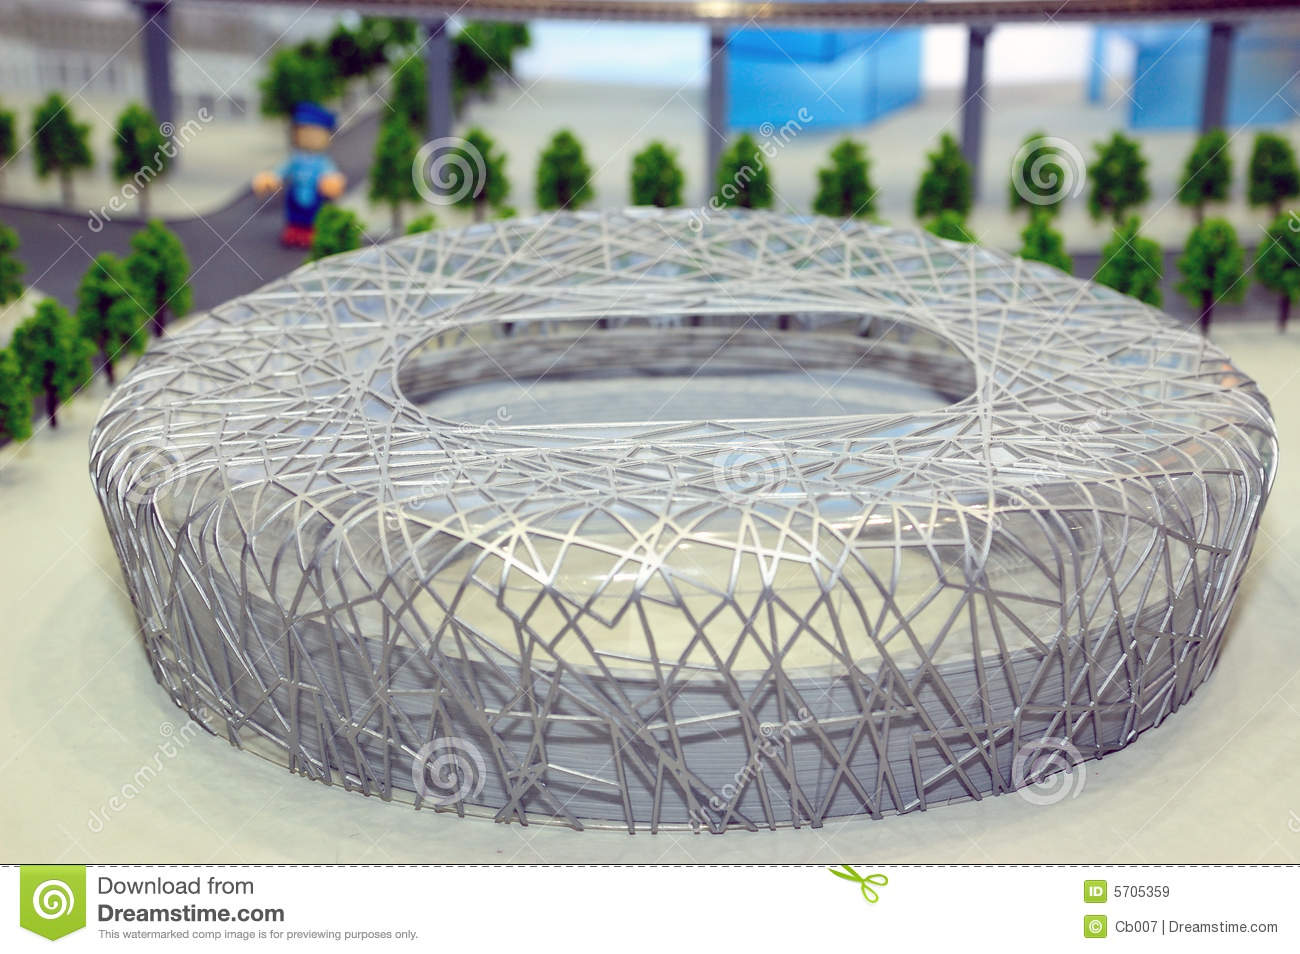 Model of bird 39 s nest stadium editorial stock image image for Nest bird stadium